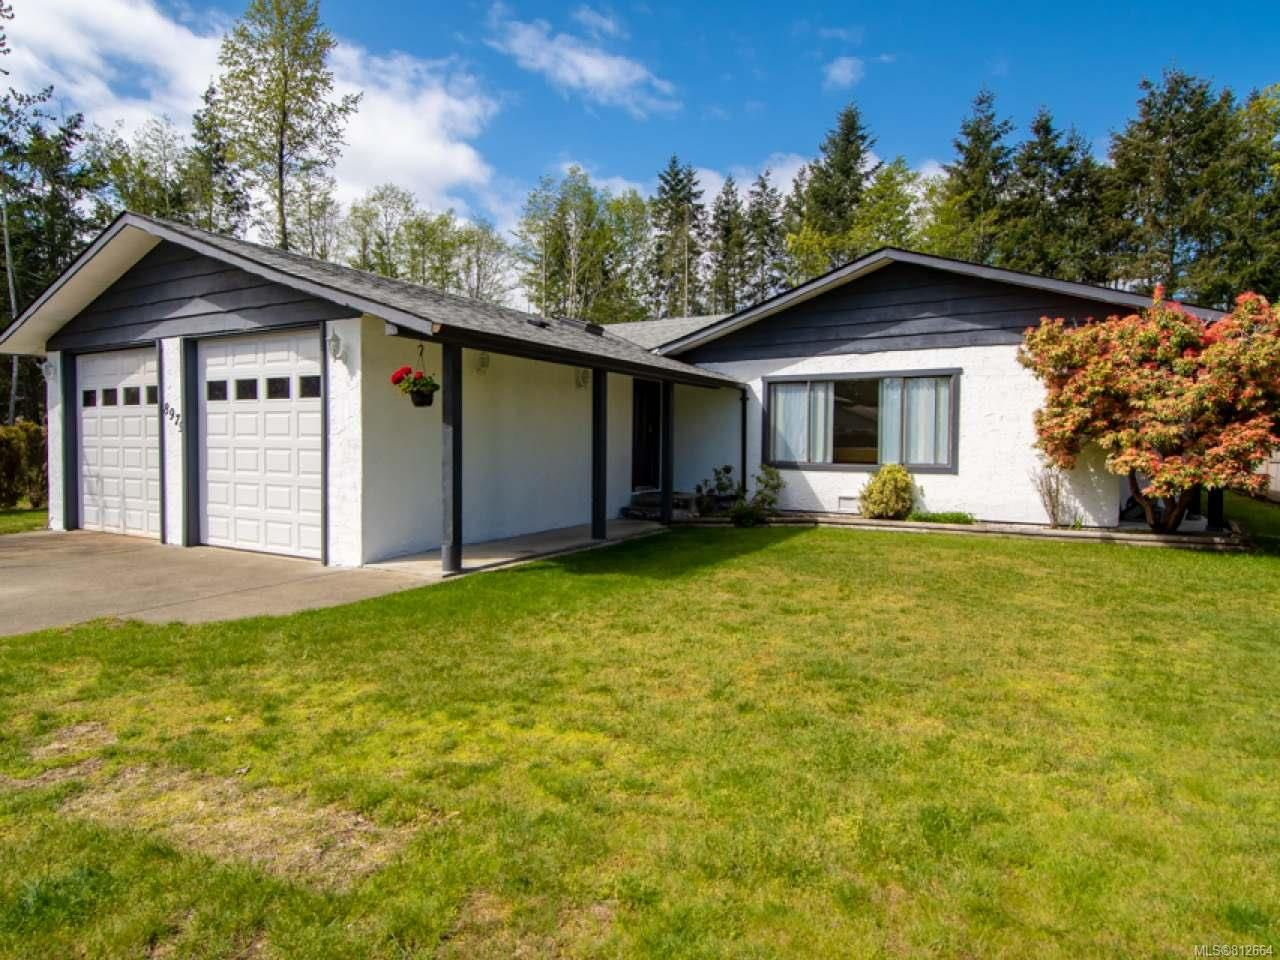 Main Photo: 8979 MCLAREY Avenue in BLACK CREEK: CV Merville Black Creek House for sale (Comox Valley)  : MLS®# 812664